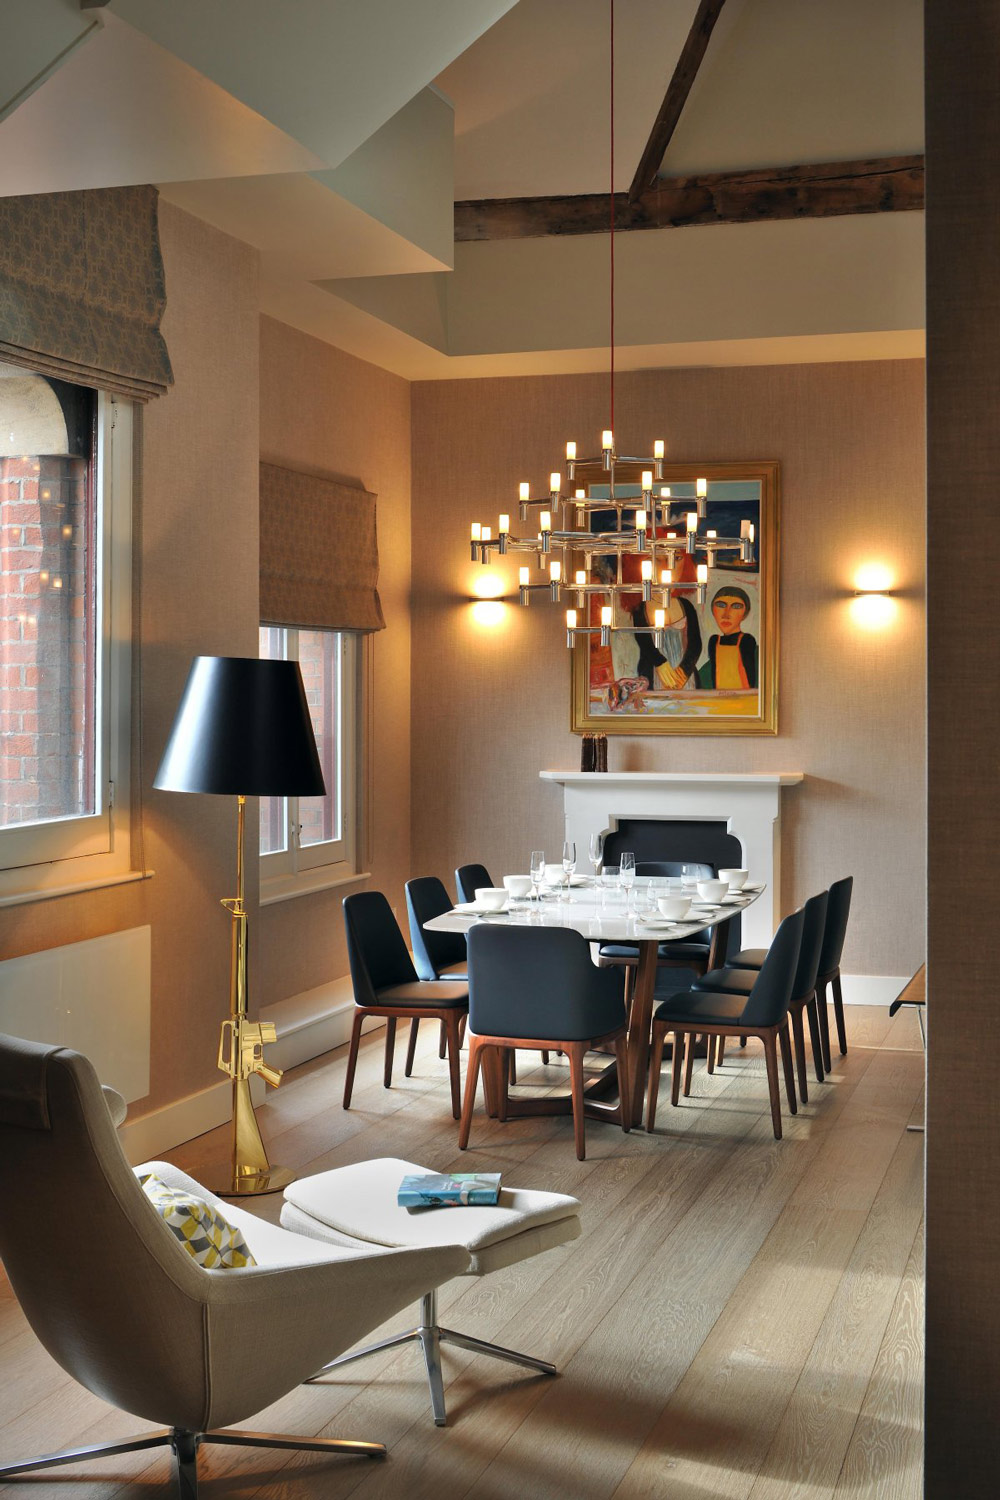 penthouse apartment london kitchen table lighting Dining Table Lighting St Pancras Penthouse Apartment in London